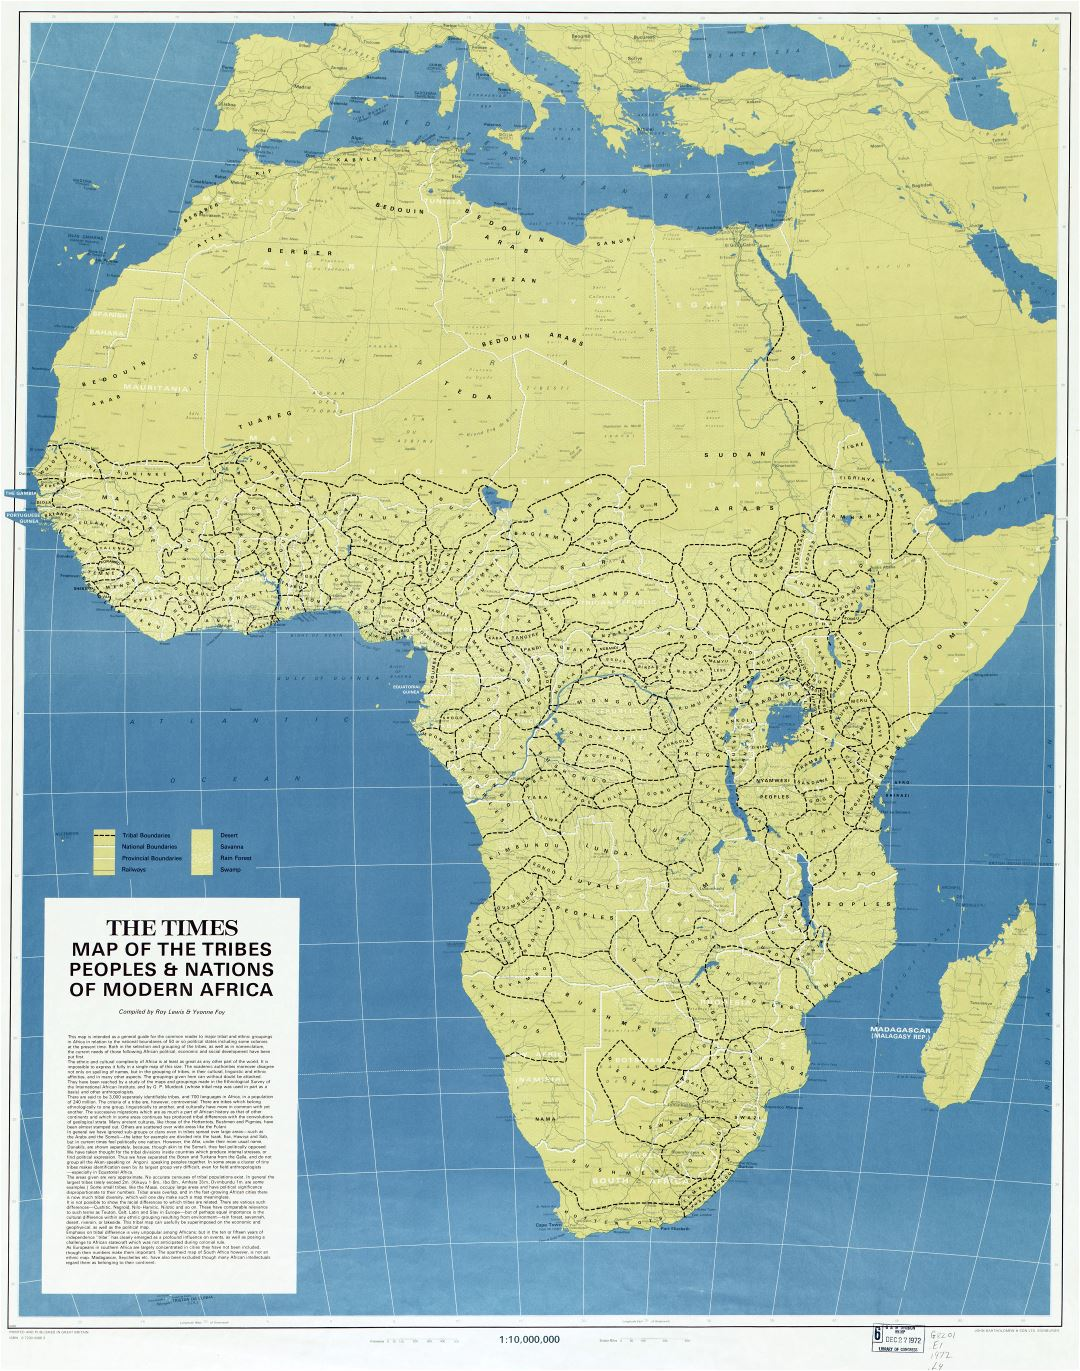 Large scale detailed map of the tribes, peoples, & nations of modern Africa - 1972